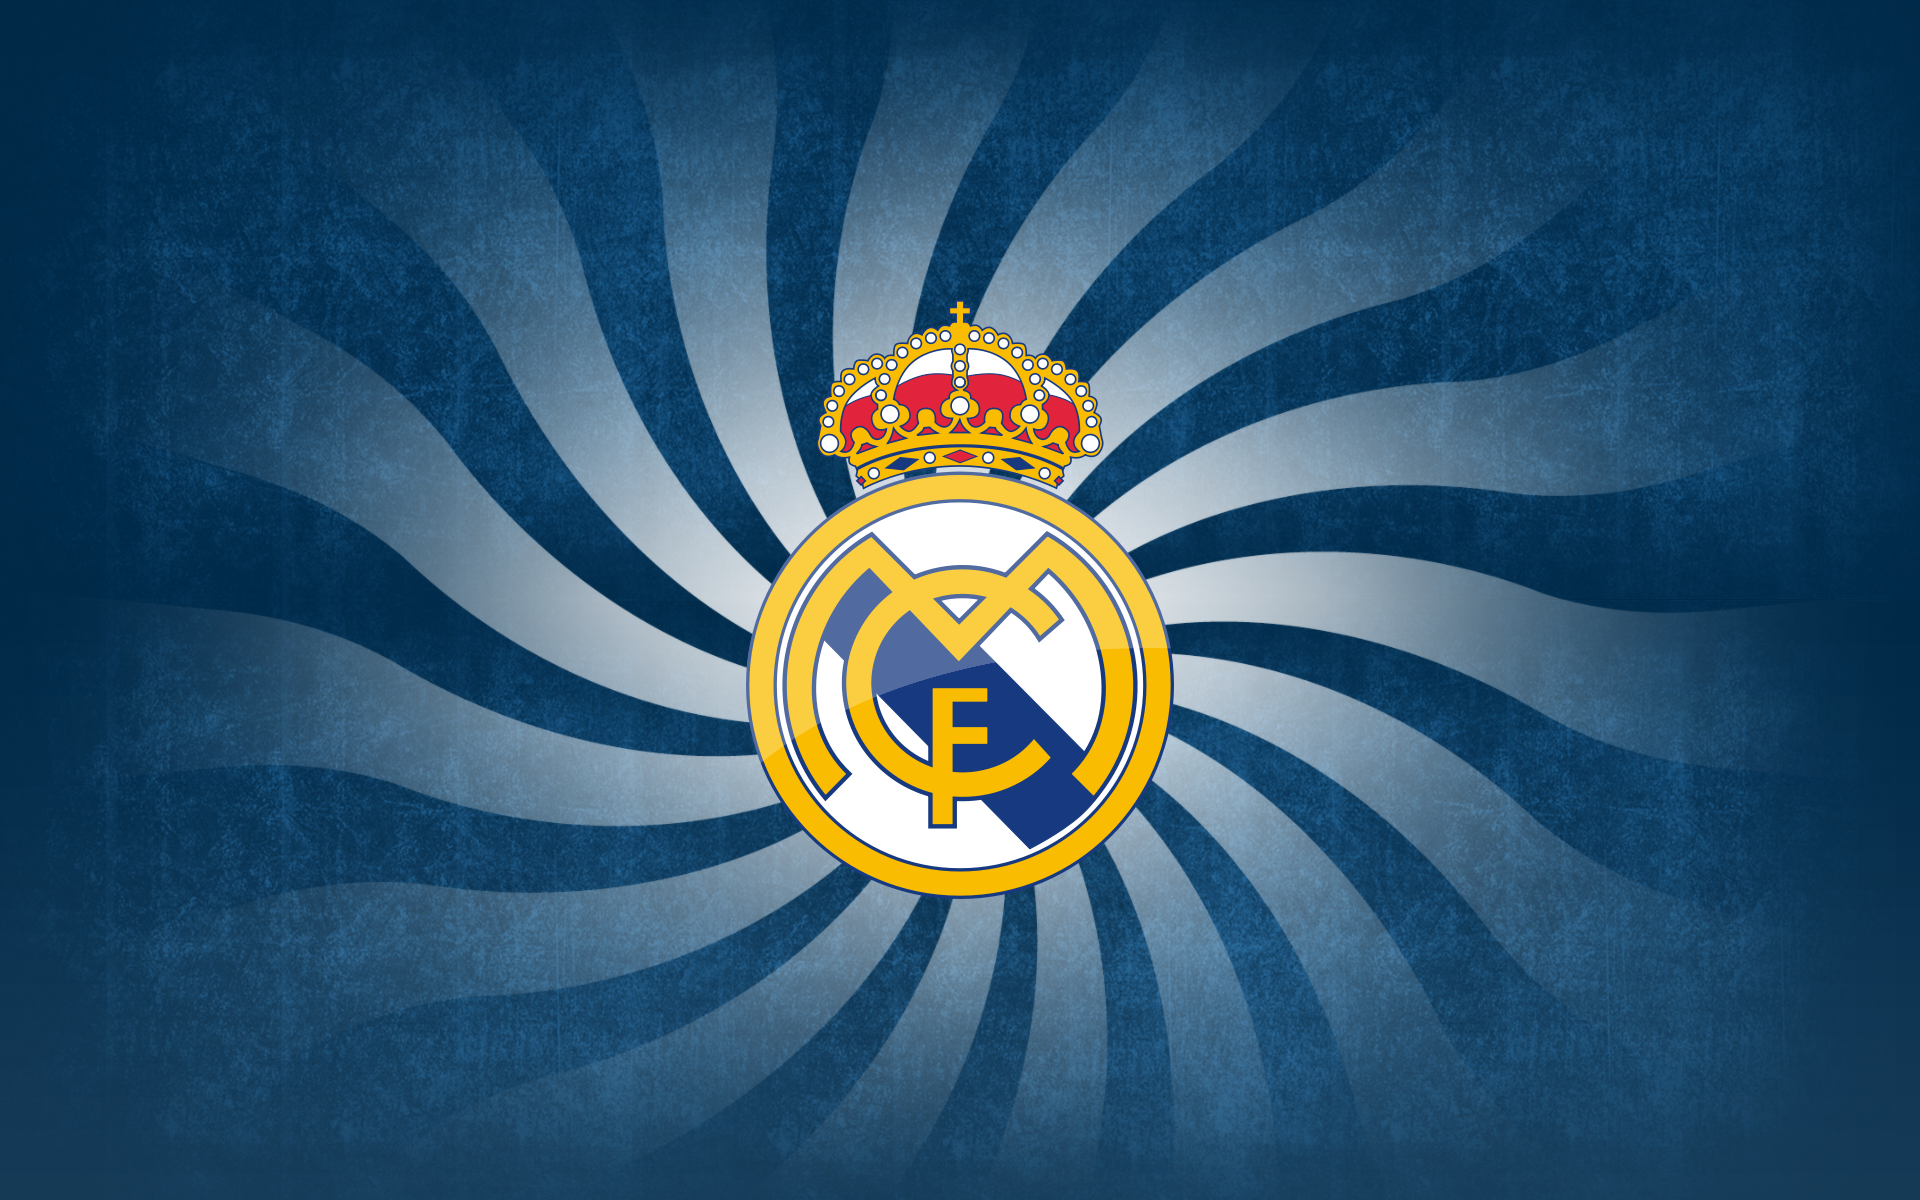 Logo real madrid wallpaper widescreen hd 13429 wallpaper logo real madrid wallpaper widescreen hd voltagebd Images